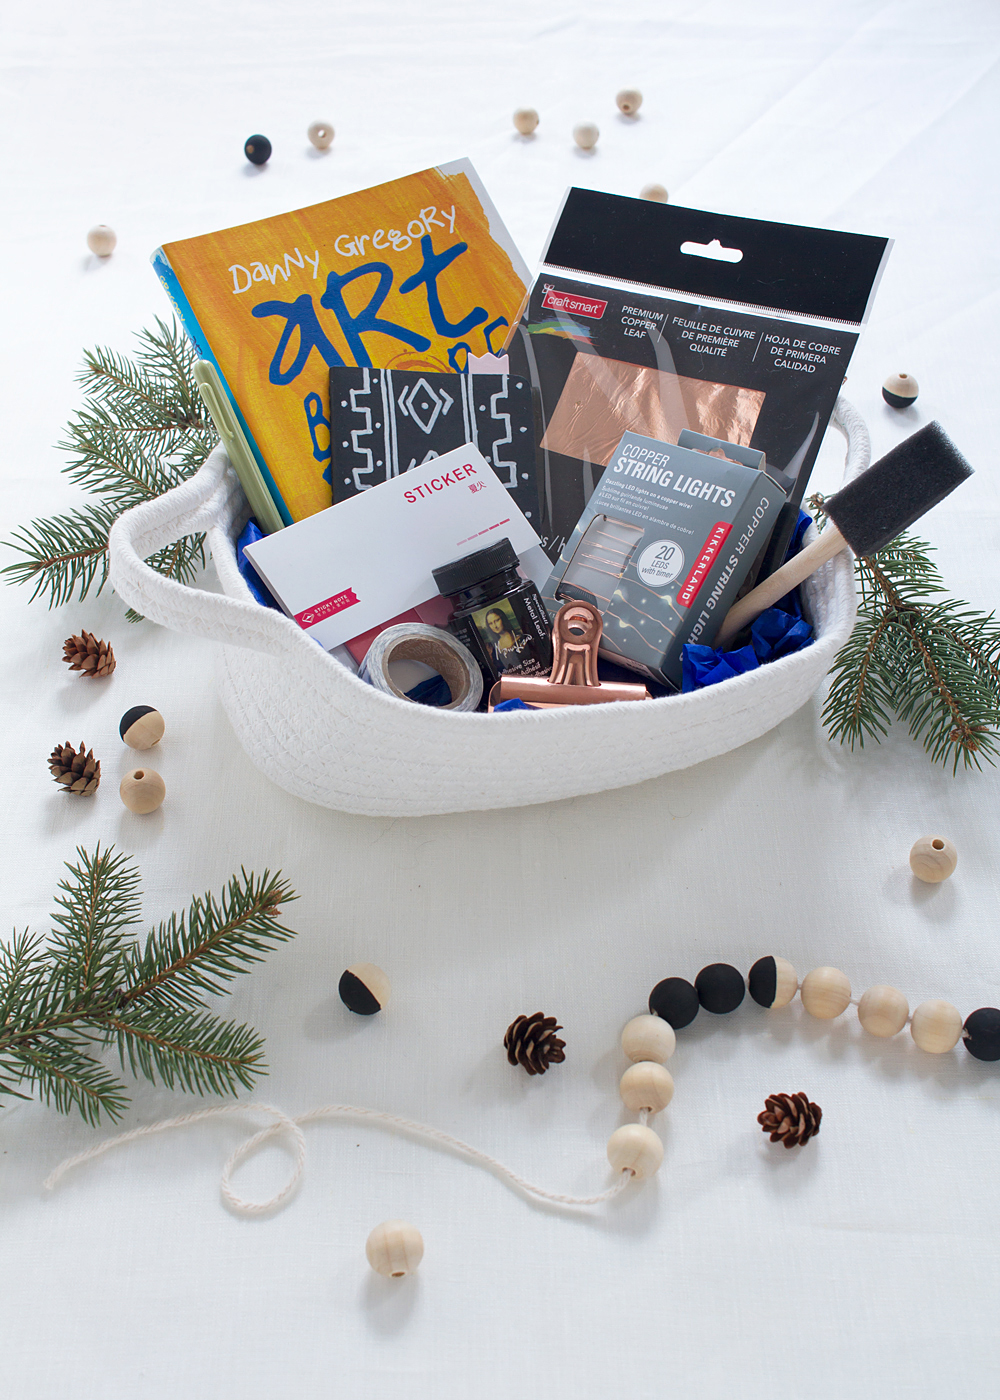 Win a basket of my favorite things, just in time for the holidays!